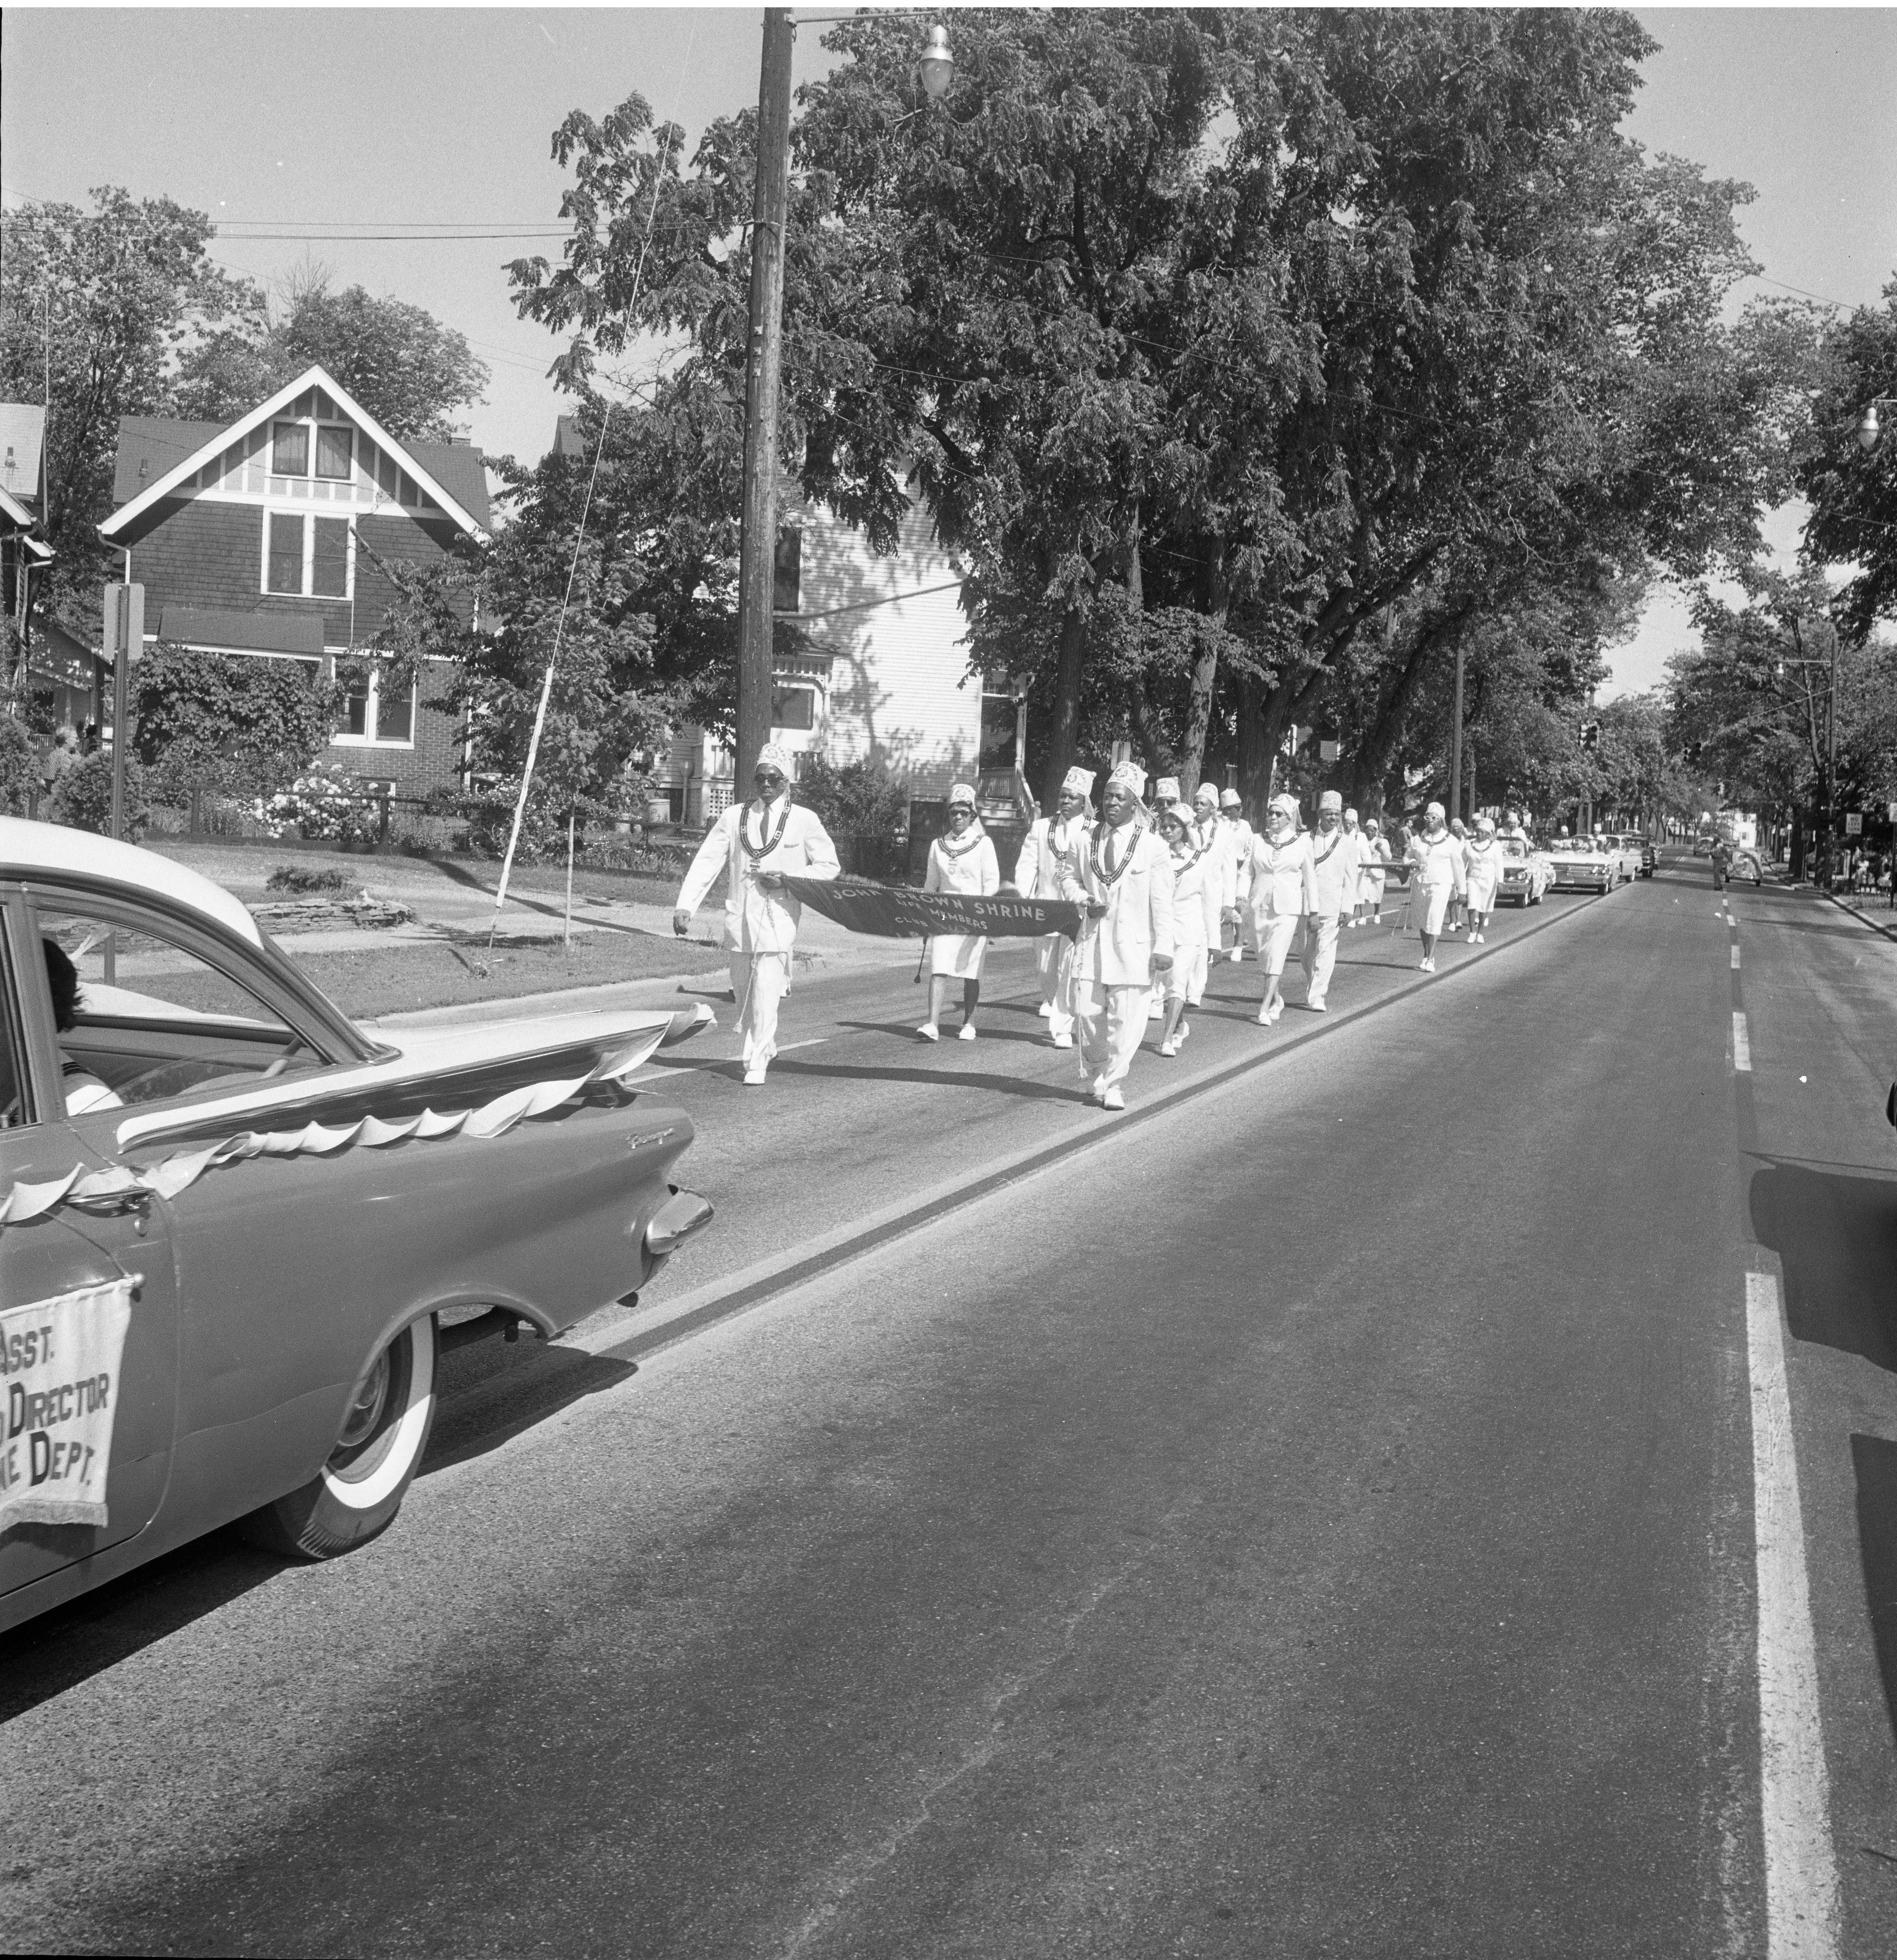 John Brown Shrine Marching In The 26th Annual Elks Convention Parade, June 25, 1962 image